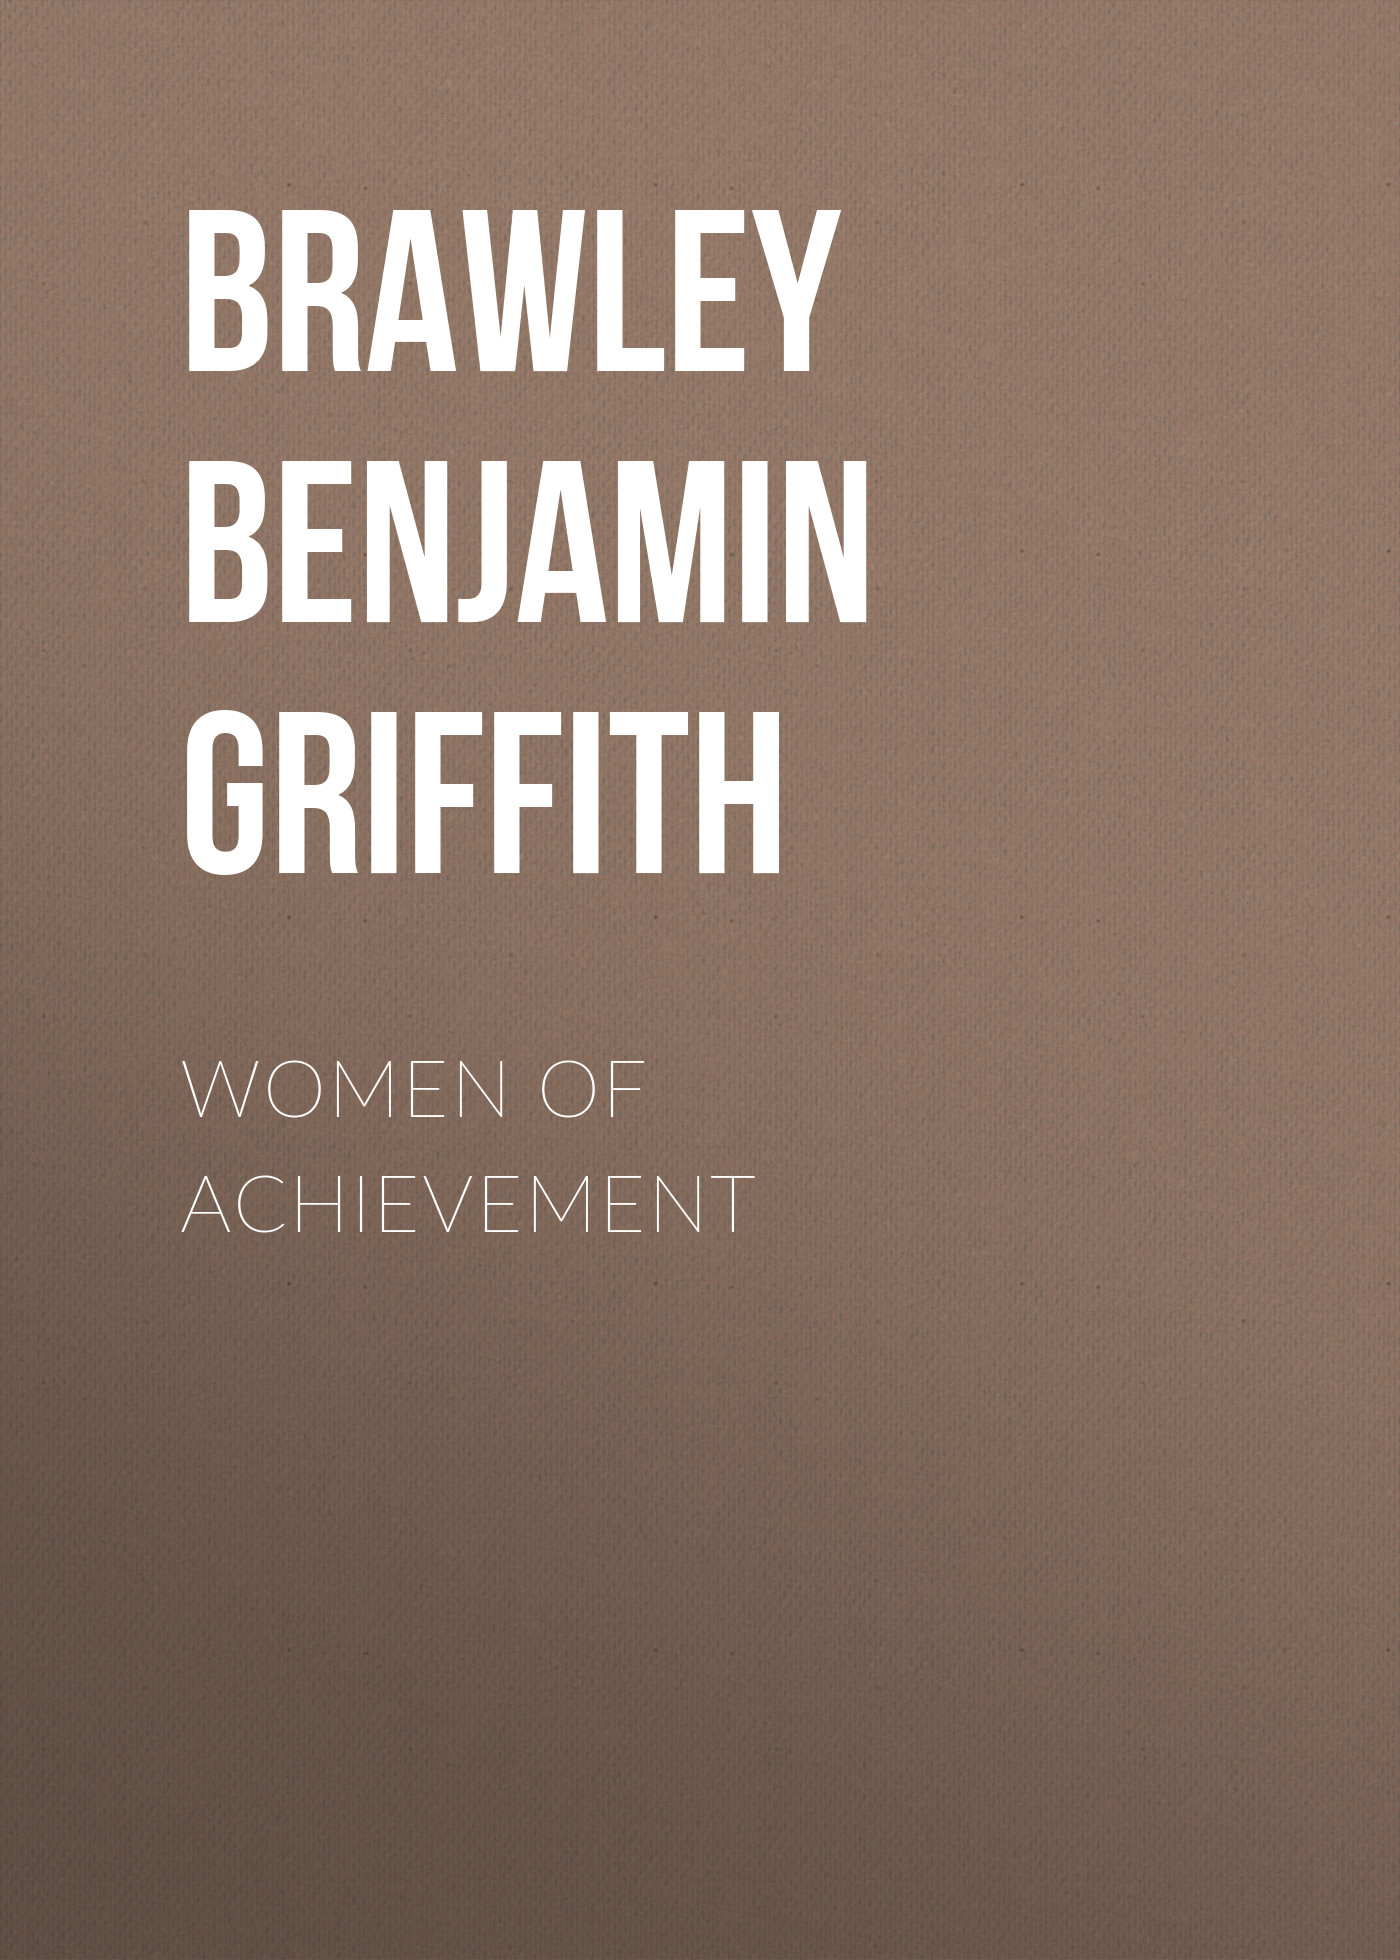 Brawley Benjamin Griffith Women of Achievement becket griffith j myths